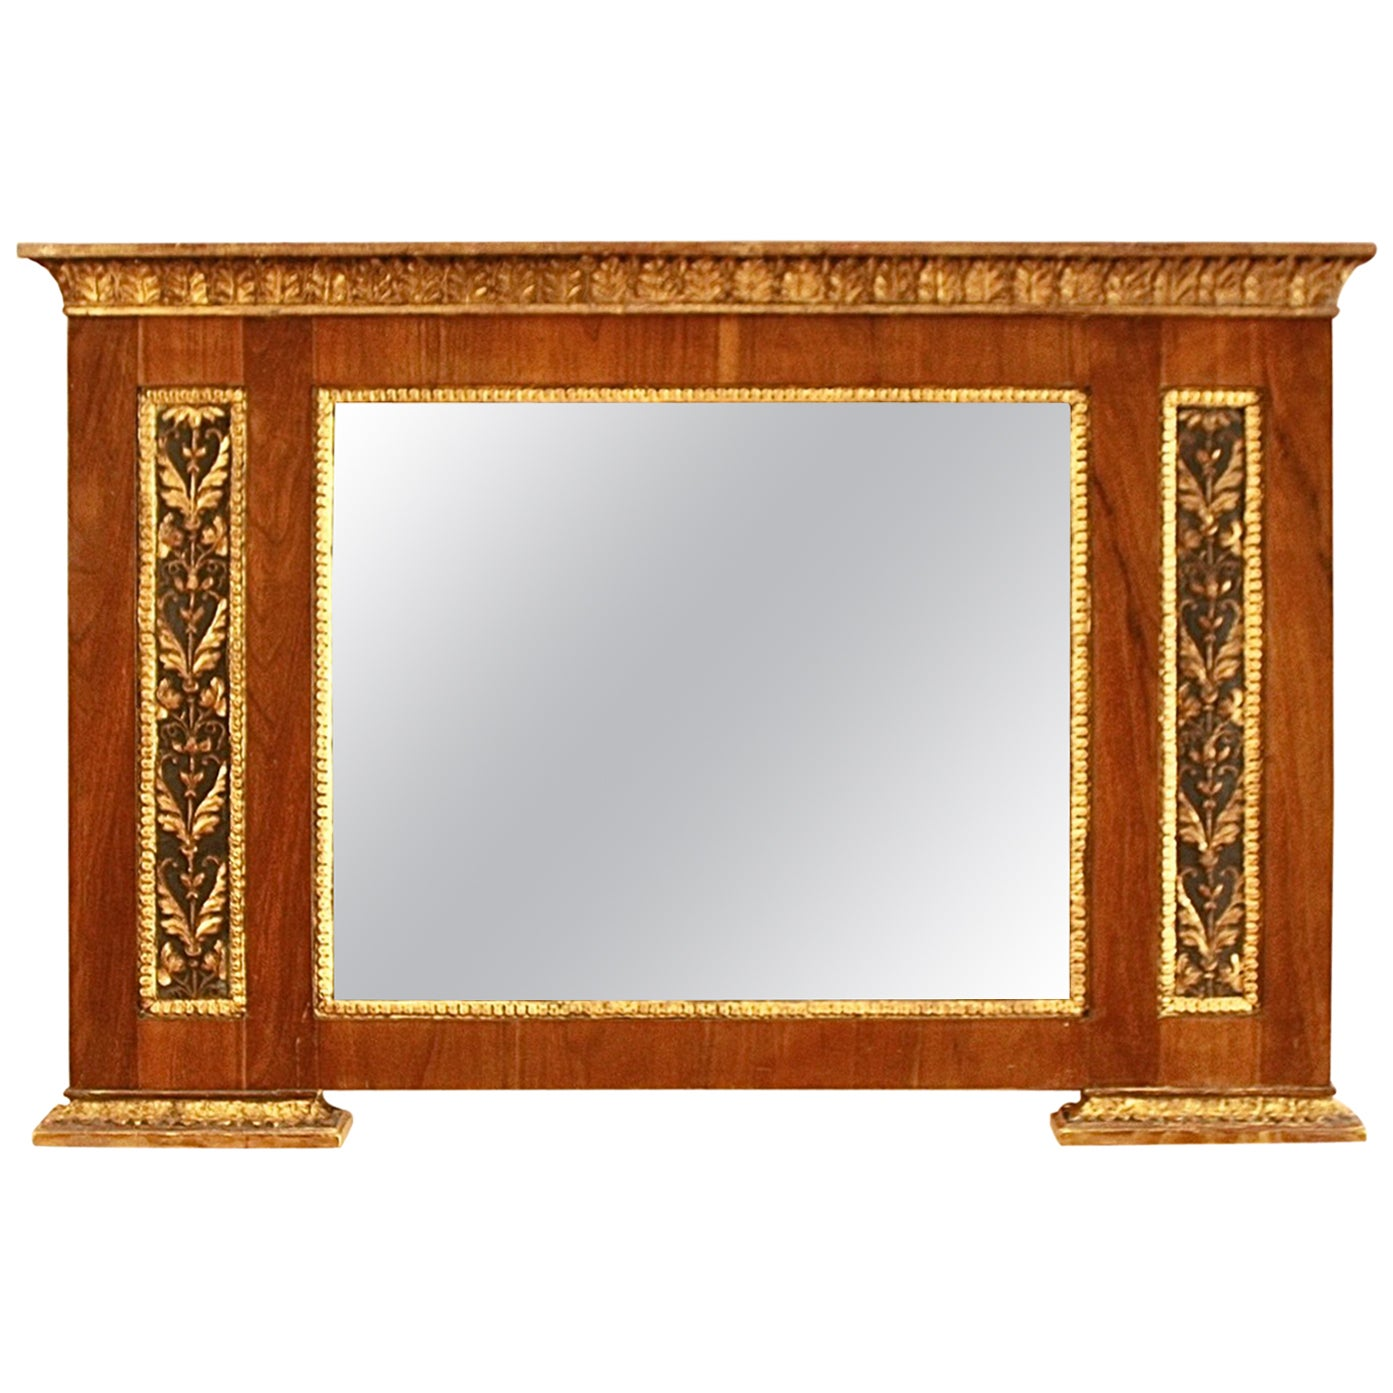 Early 19th Century North Italy Neoclassical Walnut Giltwood Overmantel Mirror